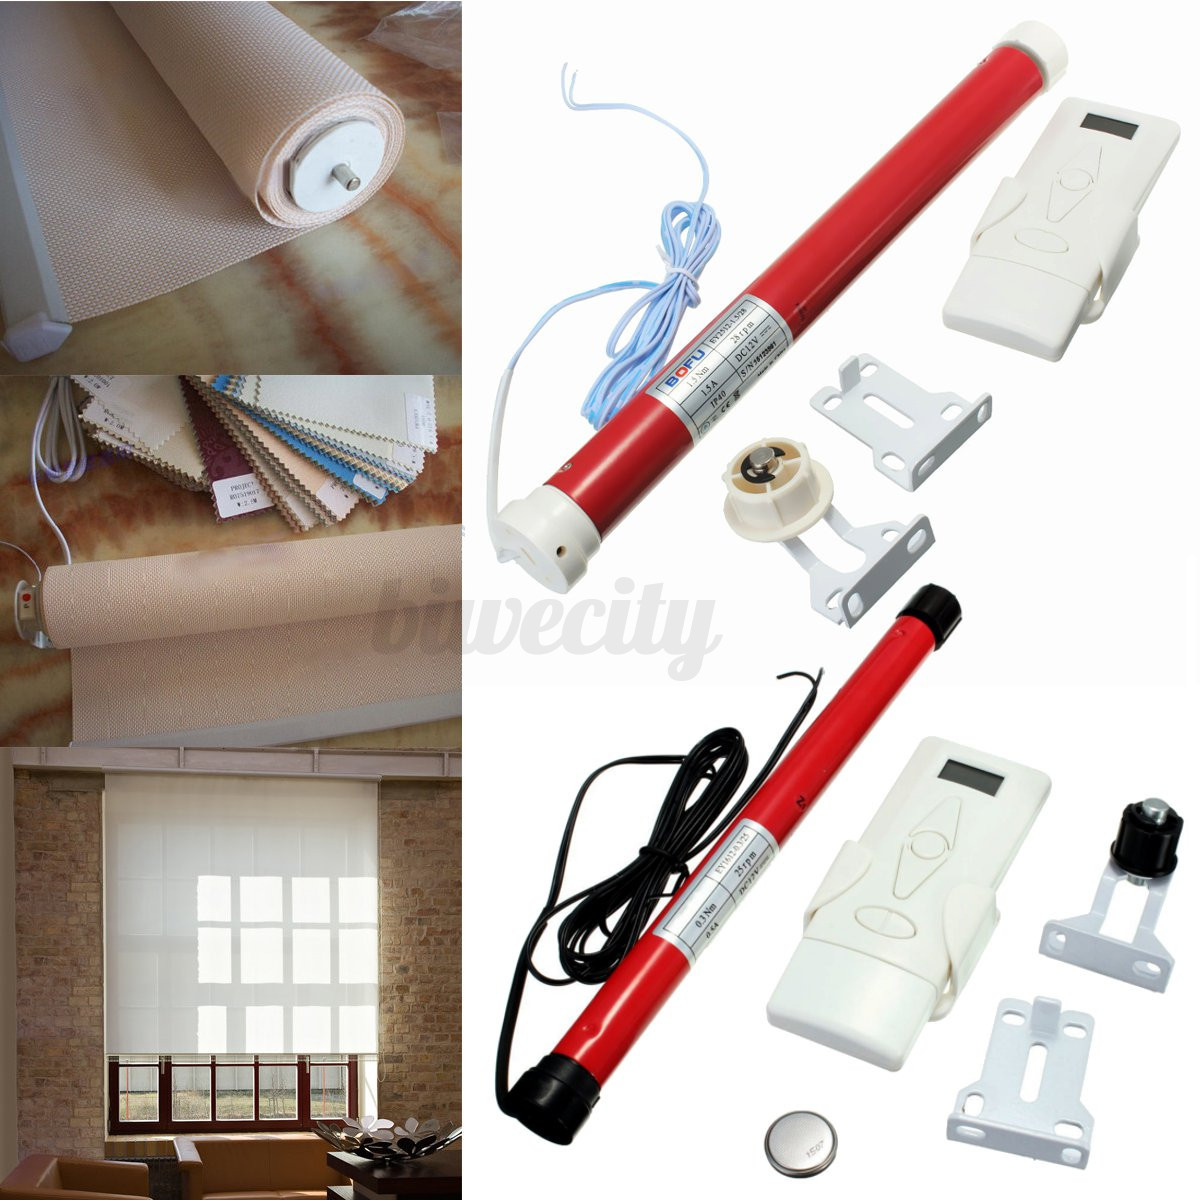 Diy Automatic Curtains 2 Size 12v Diy Electric Roller Blind Shade Tubular Motor